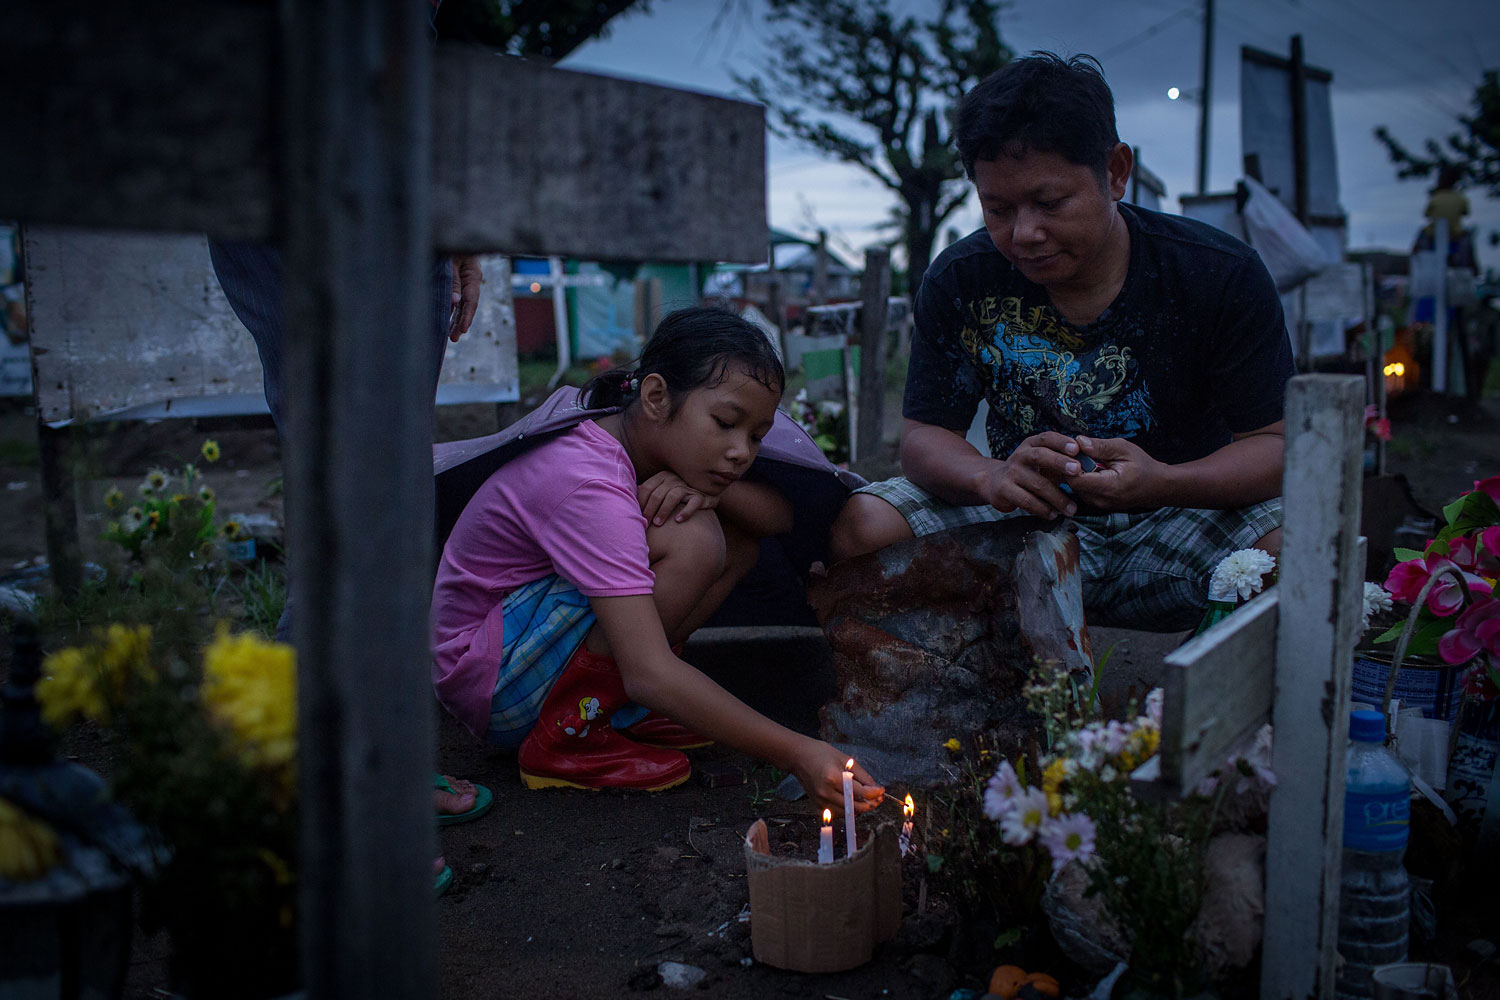 Jonna Lizette C. Modesto lights candles at the gravesite of her 5-year old brother John Reyneud C. Modesto watched on by her father Anastacio S. Modesto III at the makeshift mass grave site at San Joaquin Parish on April 16, 2014 in Tacloban.